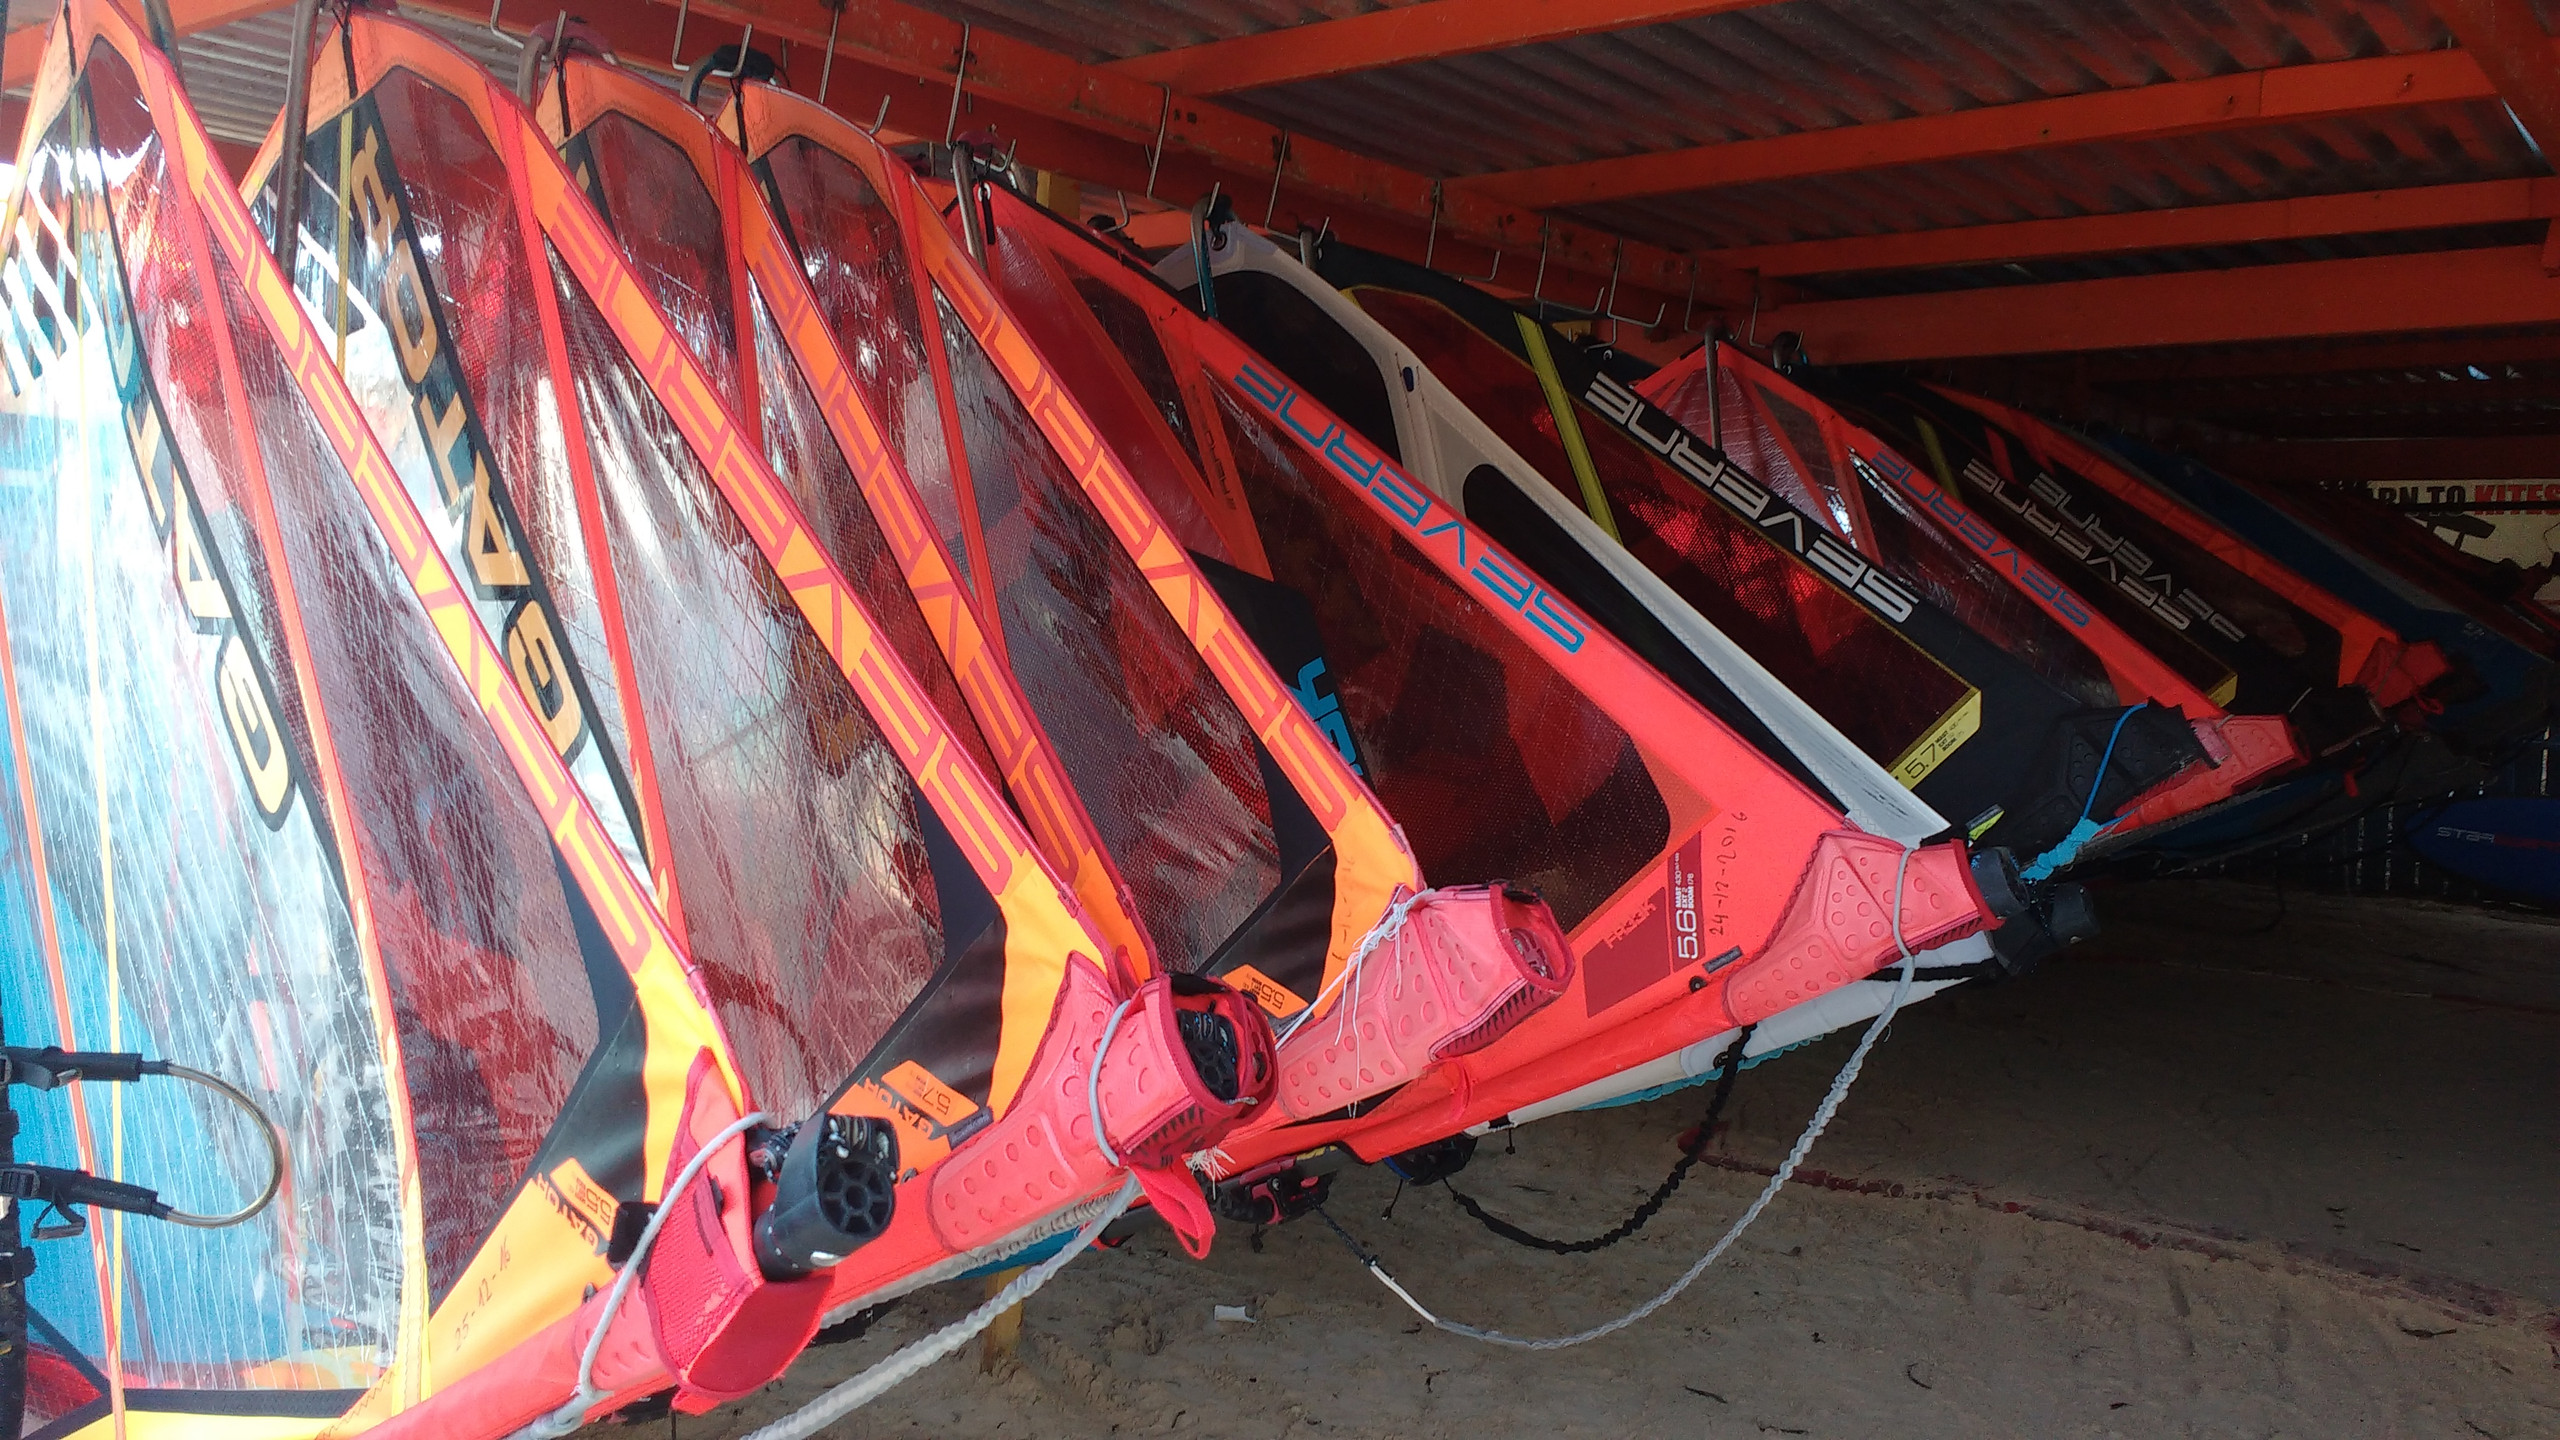 Riding with style on these Severne sails